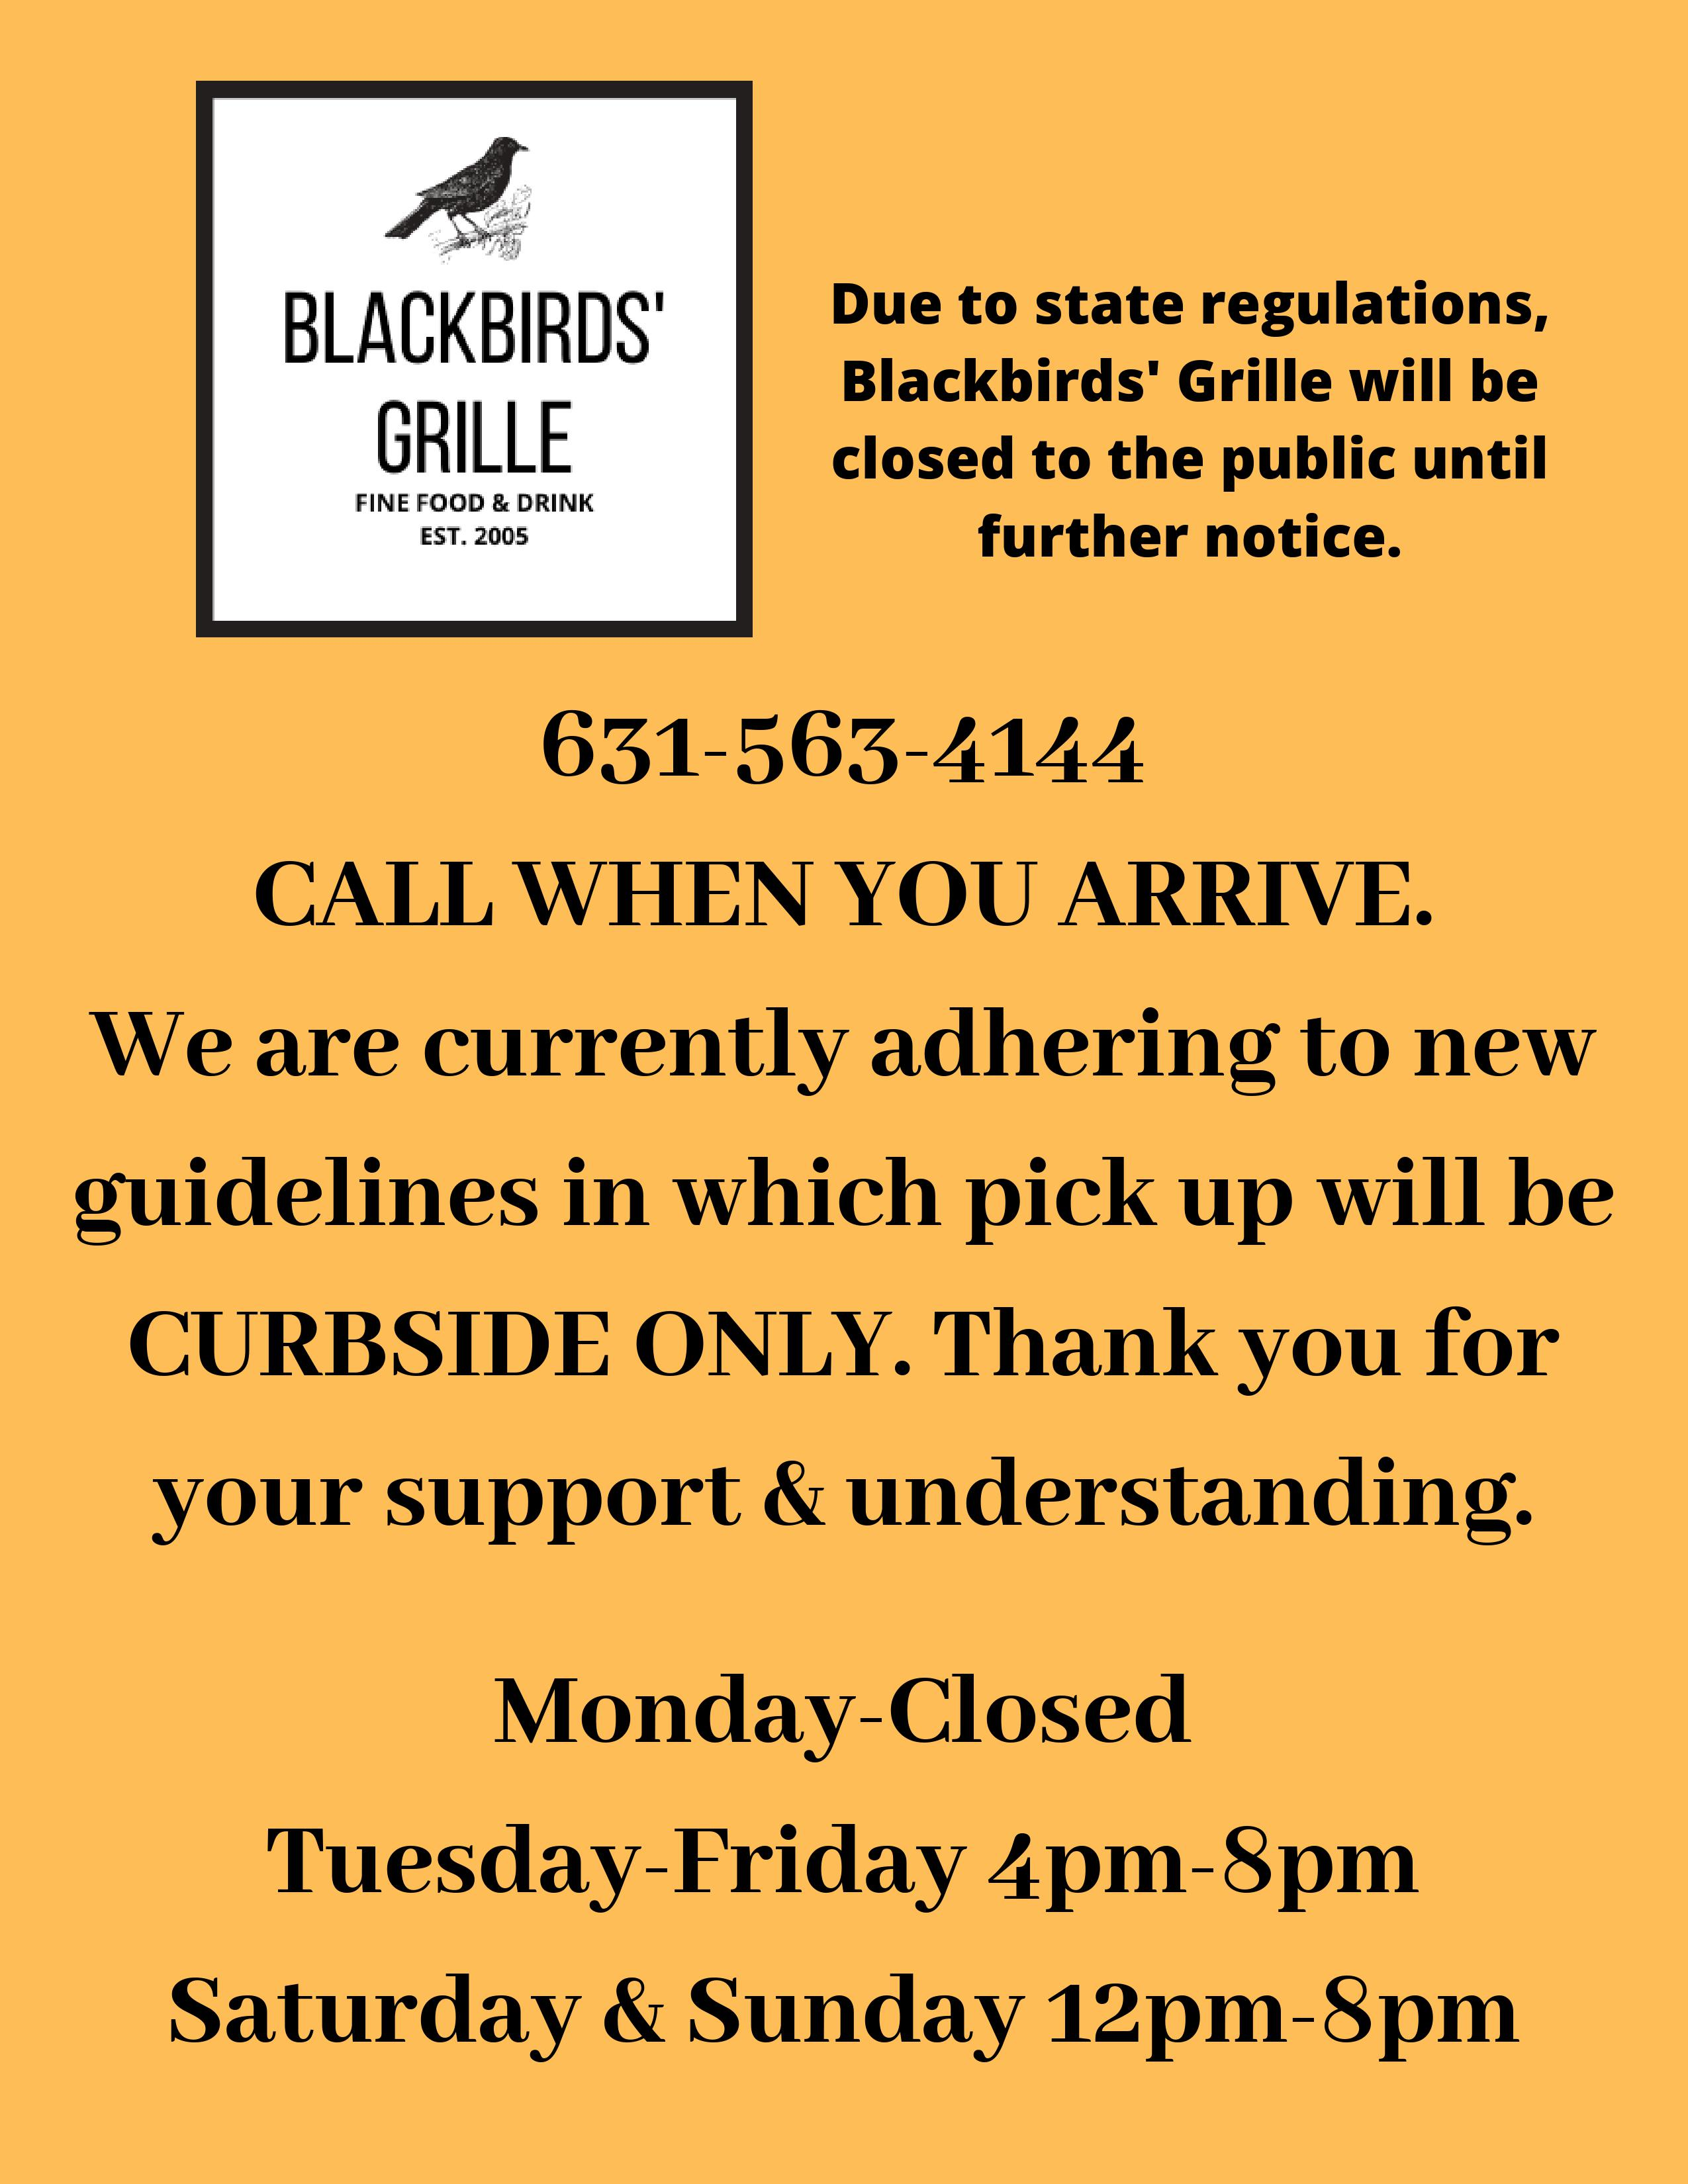 due to state regulations, blackbirds grille will be closed to the publuc until further notice. 631-563-4144 call when you arrive. We are currently adhering to new guidelines in which pick up will be curbside only. thank you for your support and undertsanding. Monday - closed. Tuesday-Friday 4pm-8pm. Saturday and Sunday 12pm-8pm.